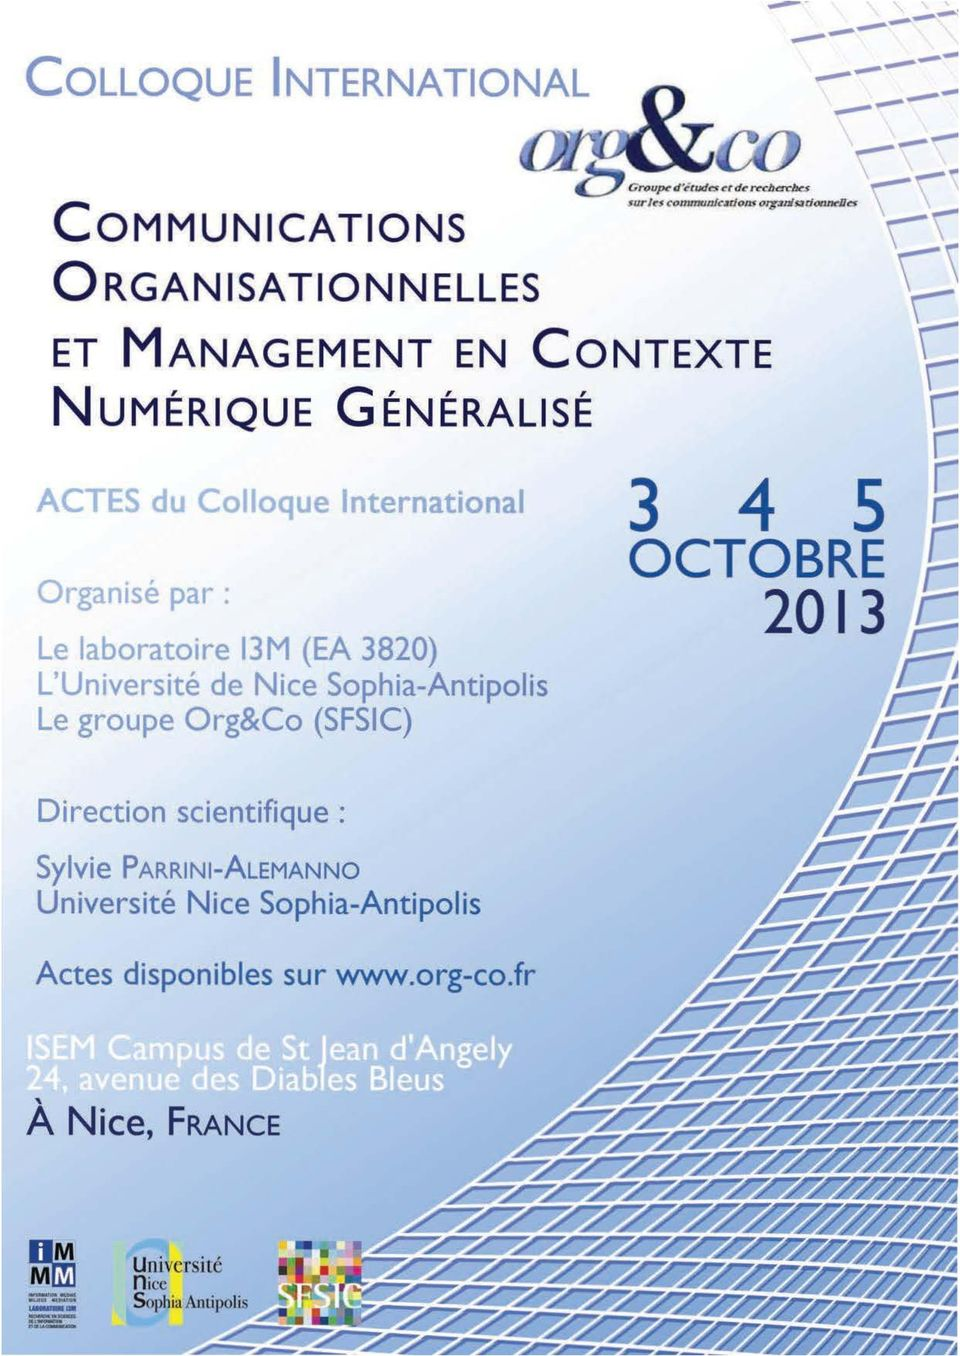 ACTES du Colloque International Organisé par : Le laboratoire 13M (EA 3820) L'Université de Nice Sophia-Antipolis Le